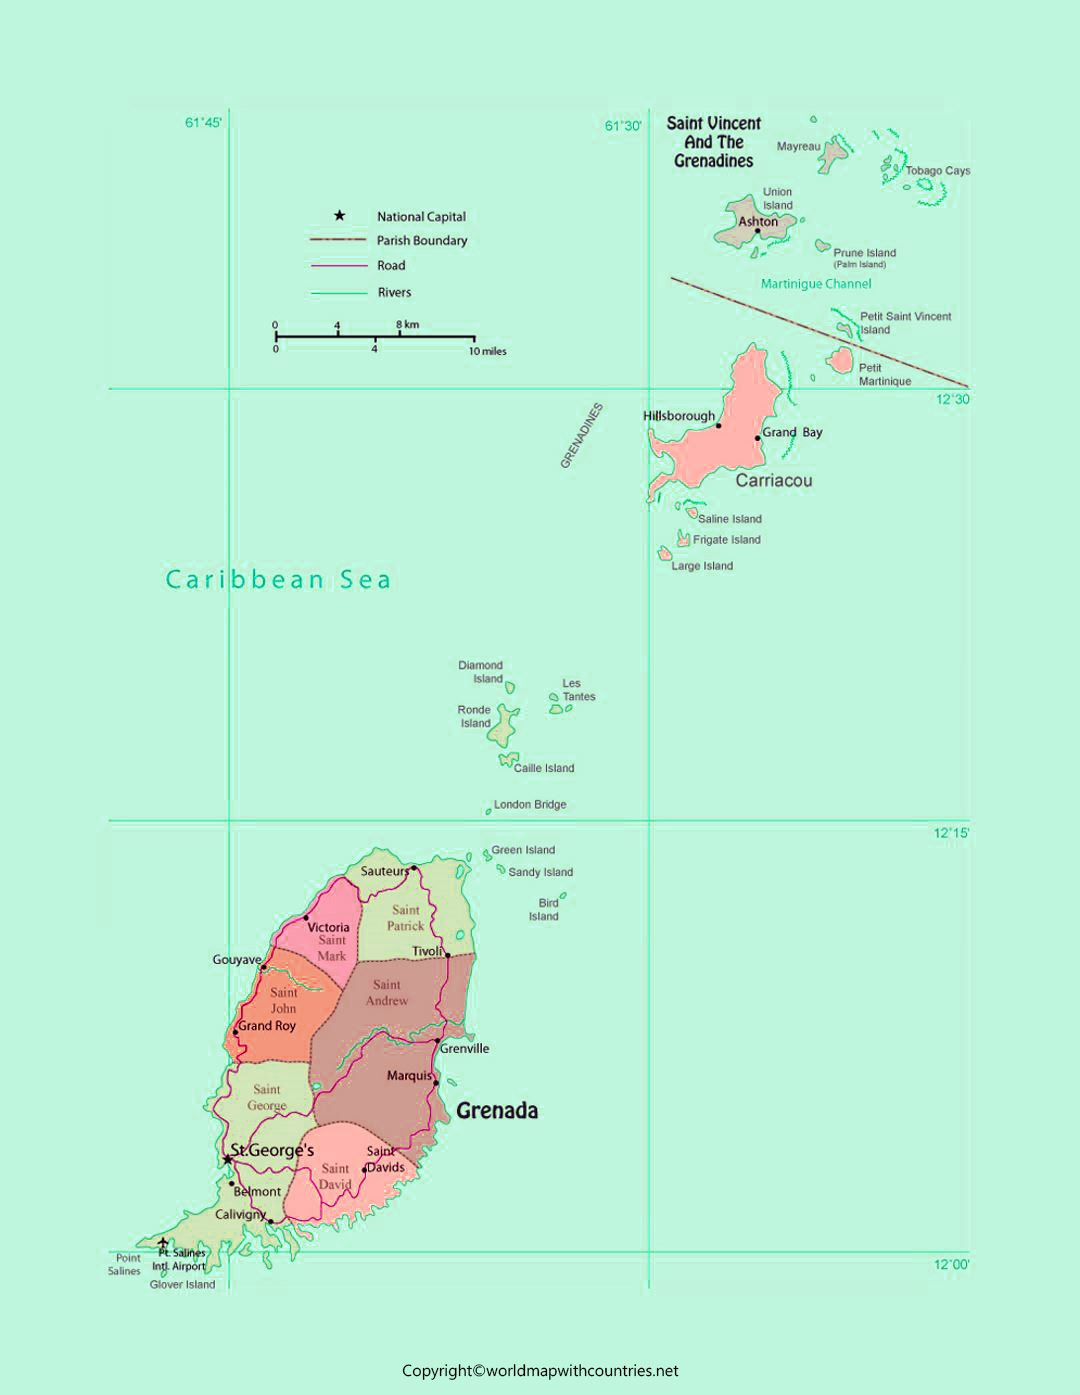 Labeled Map of Grenada